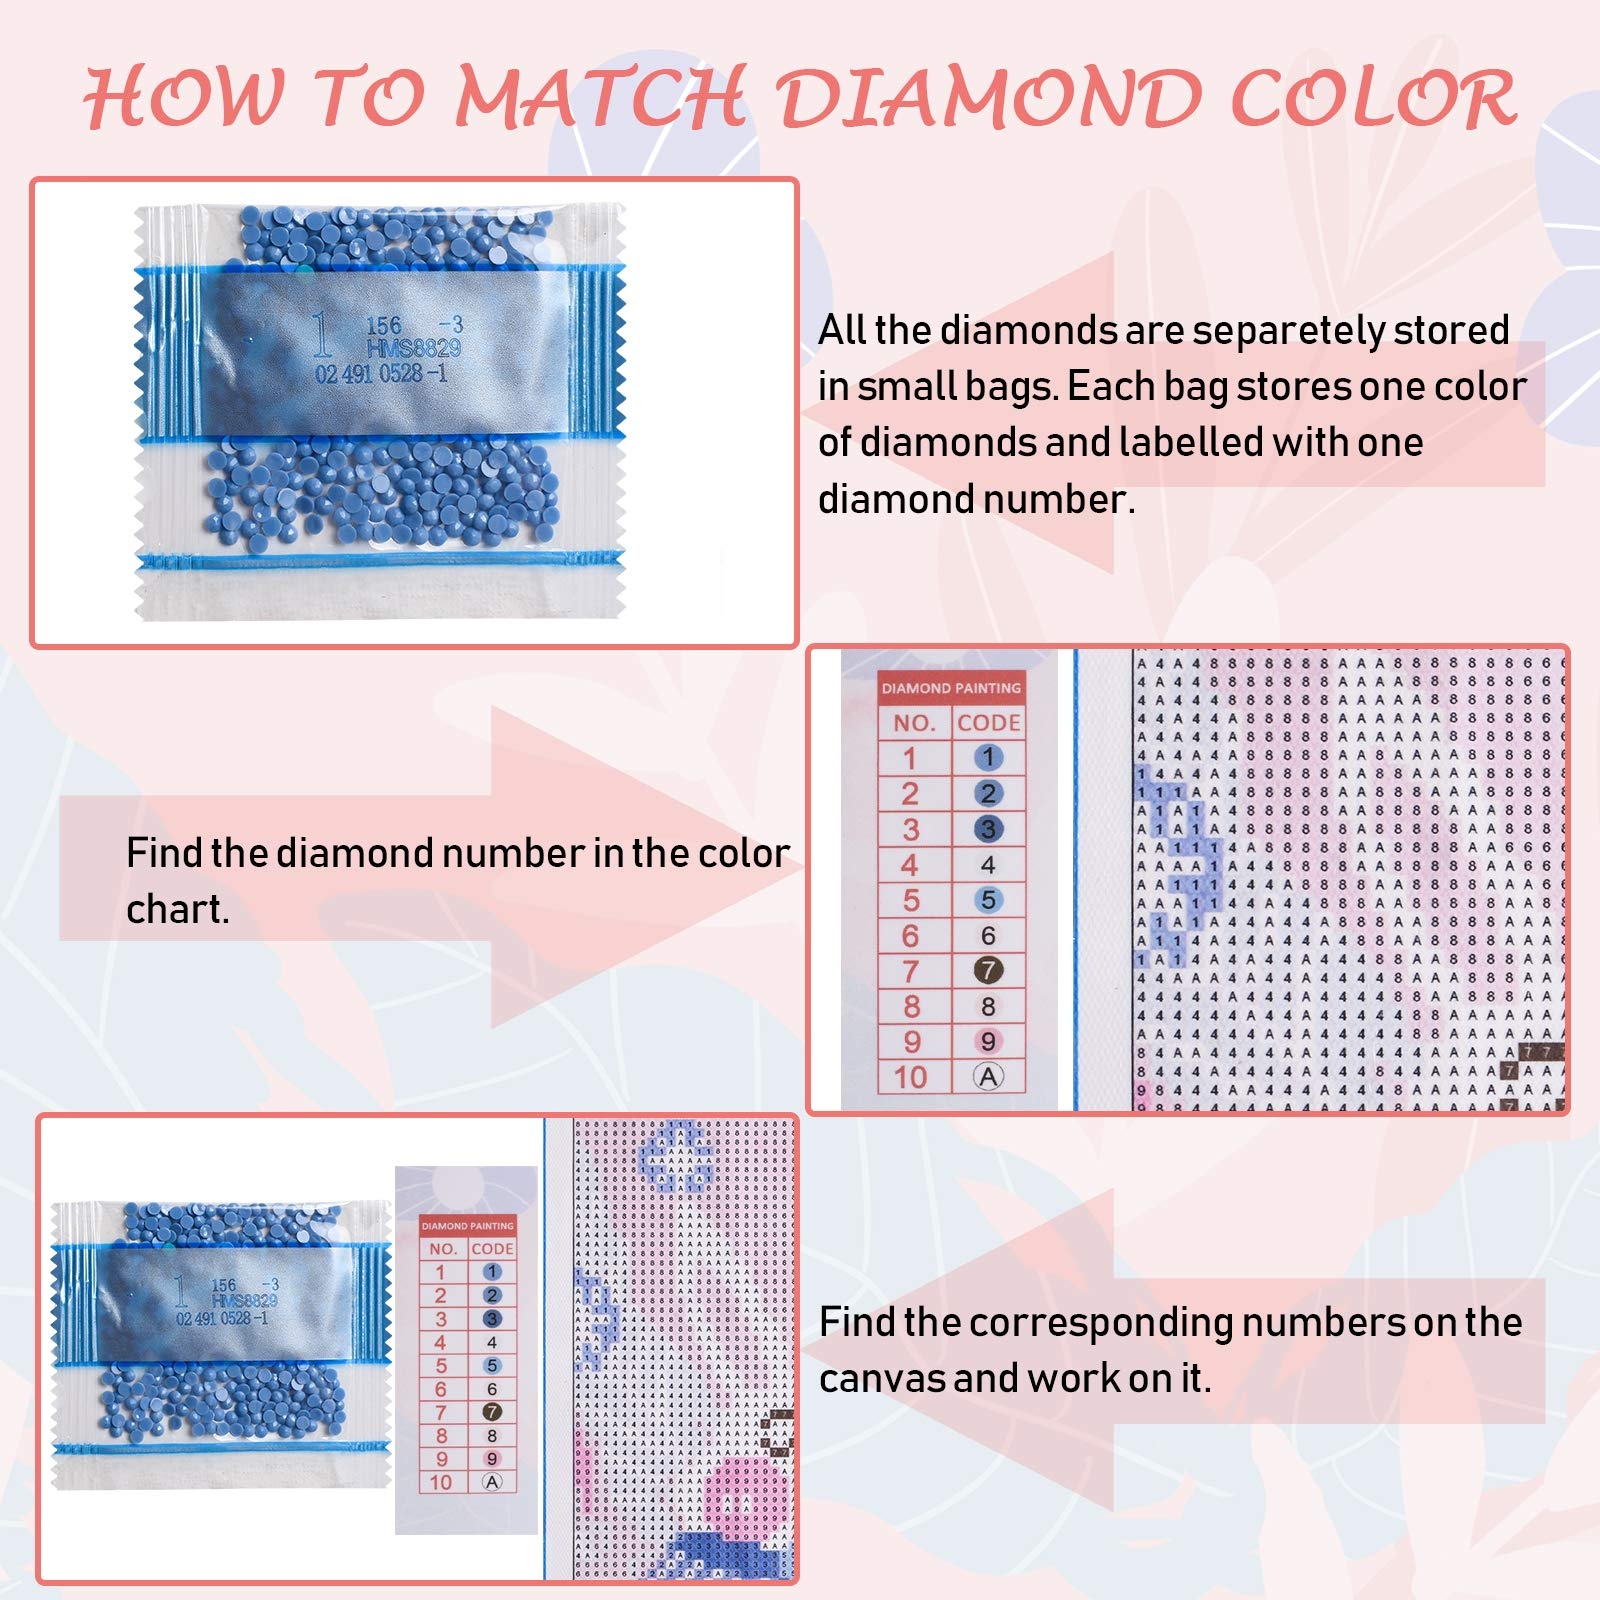 Diamond Painting, L\'émouchet DIY 5D Diamond Painting by Number Kits, Round Full Drill Diamond Embroidery Paintings Pictures DIY Diamond Art for Adults and Kids with Wooden Frame (5.9 x 5.9 inches)